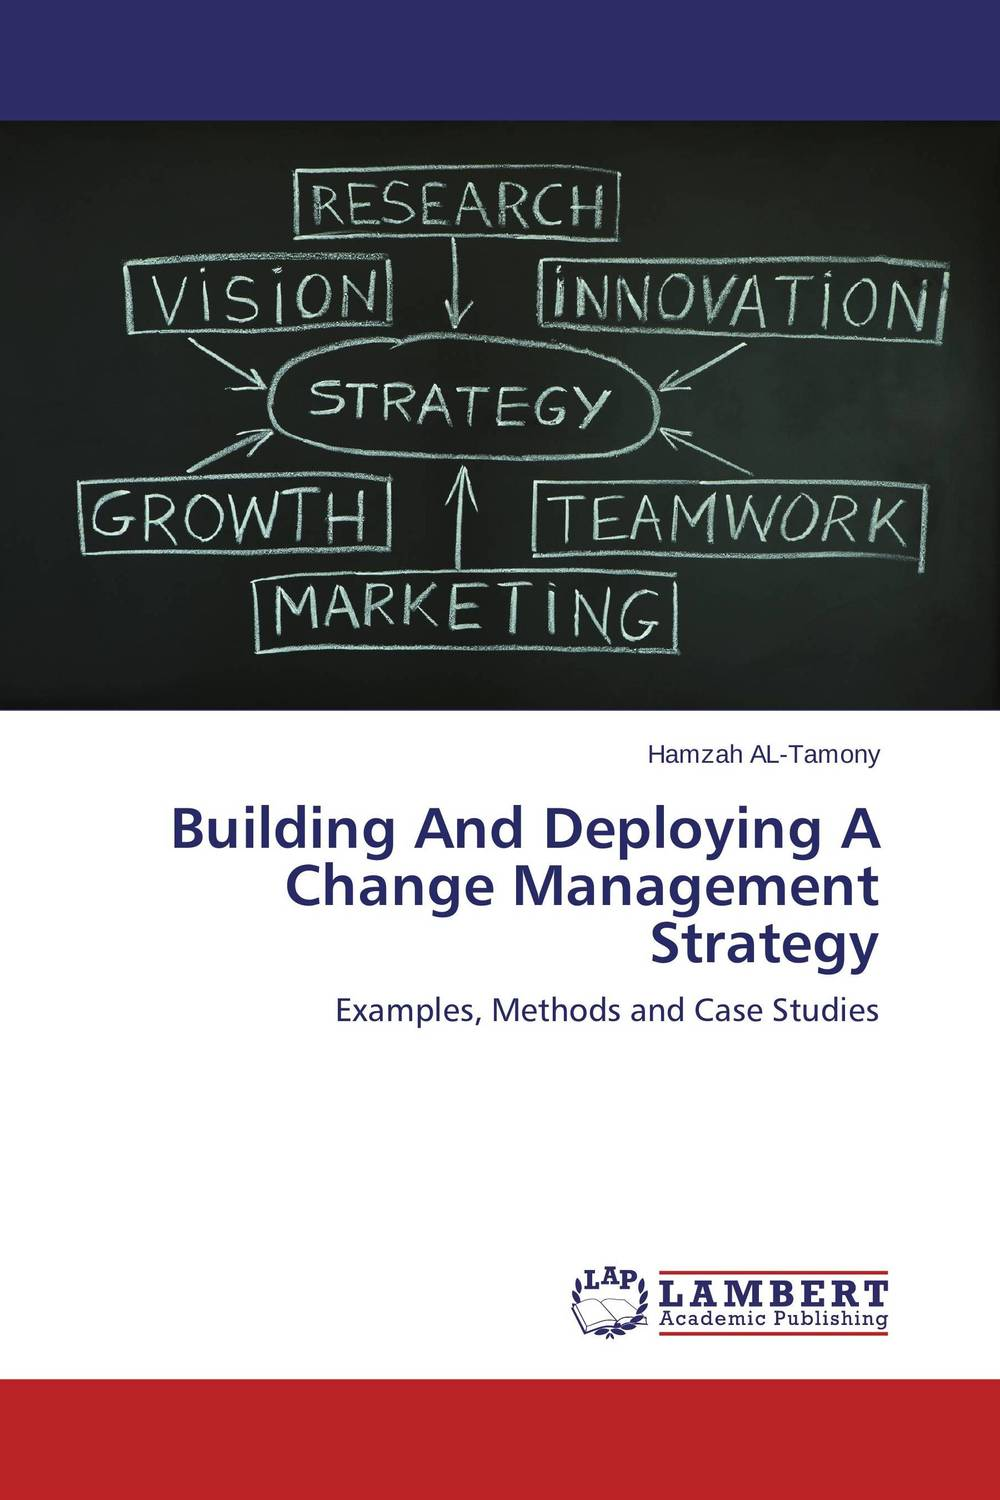 Building And Deploying A Change Management Strategy комплект сцепления на ваз 2107